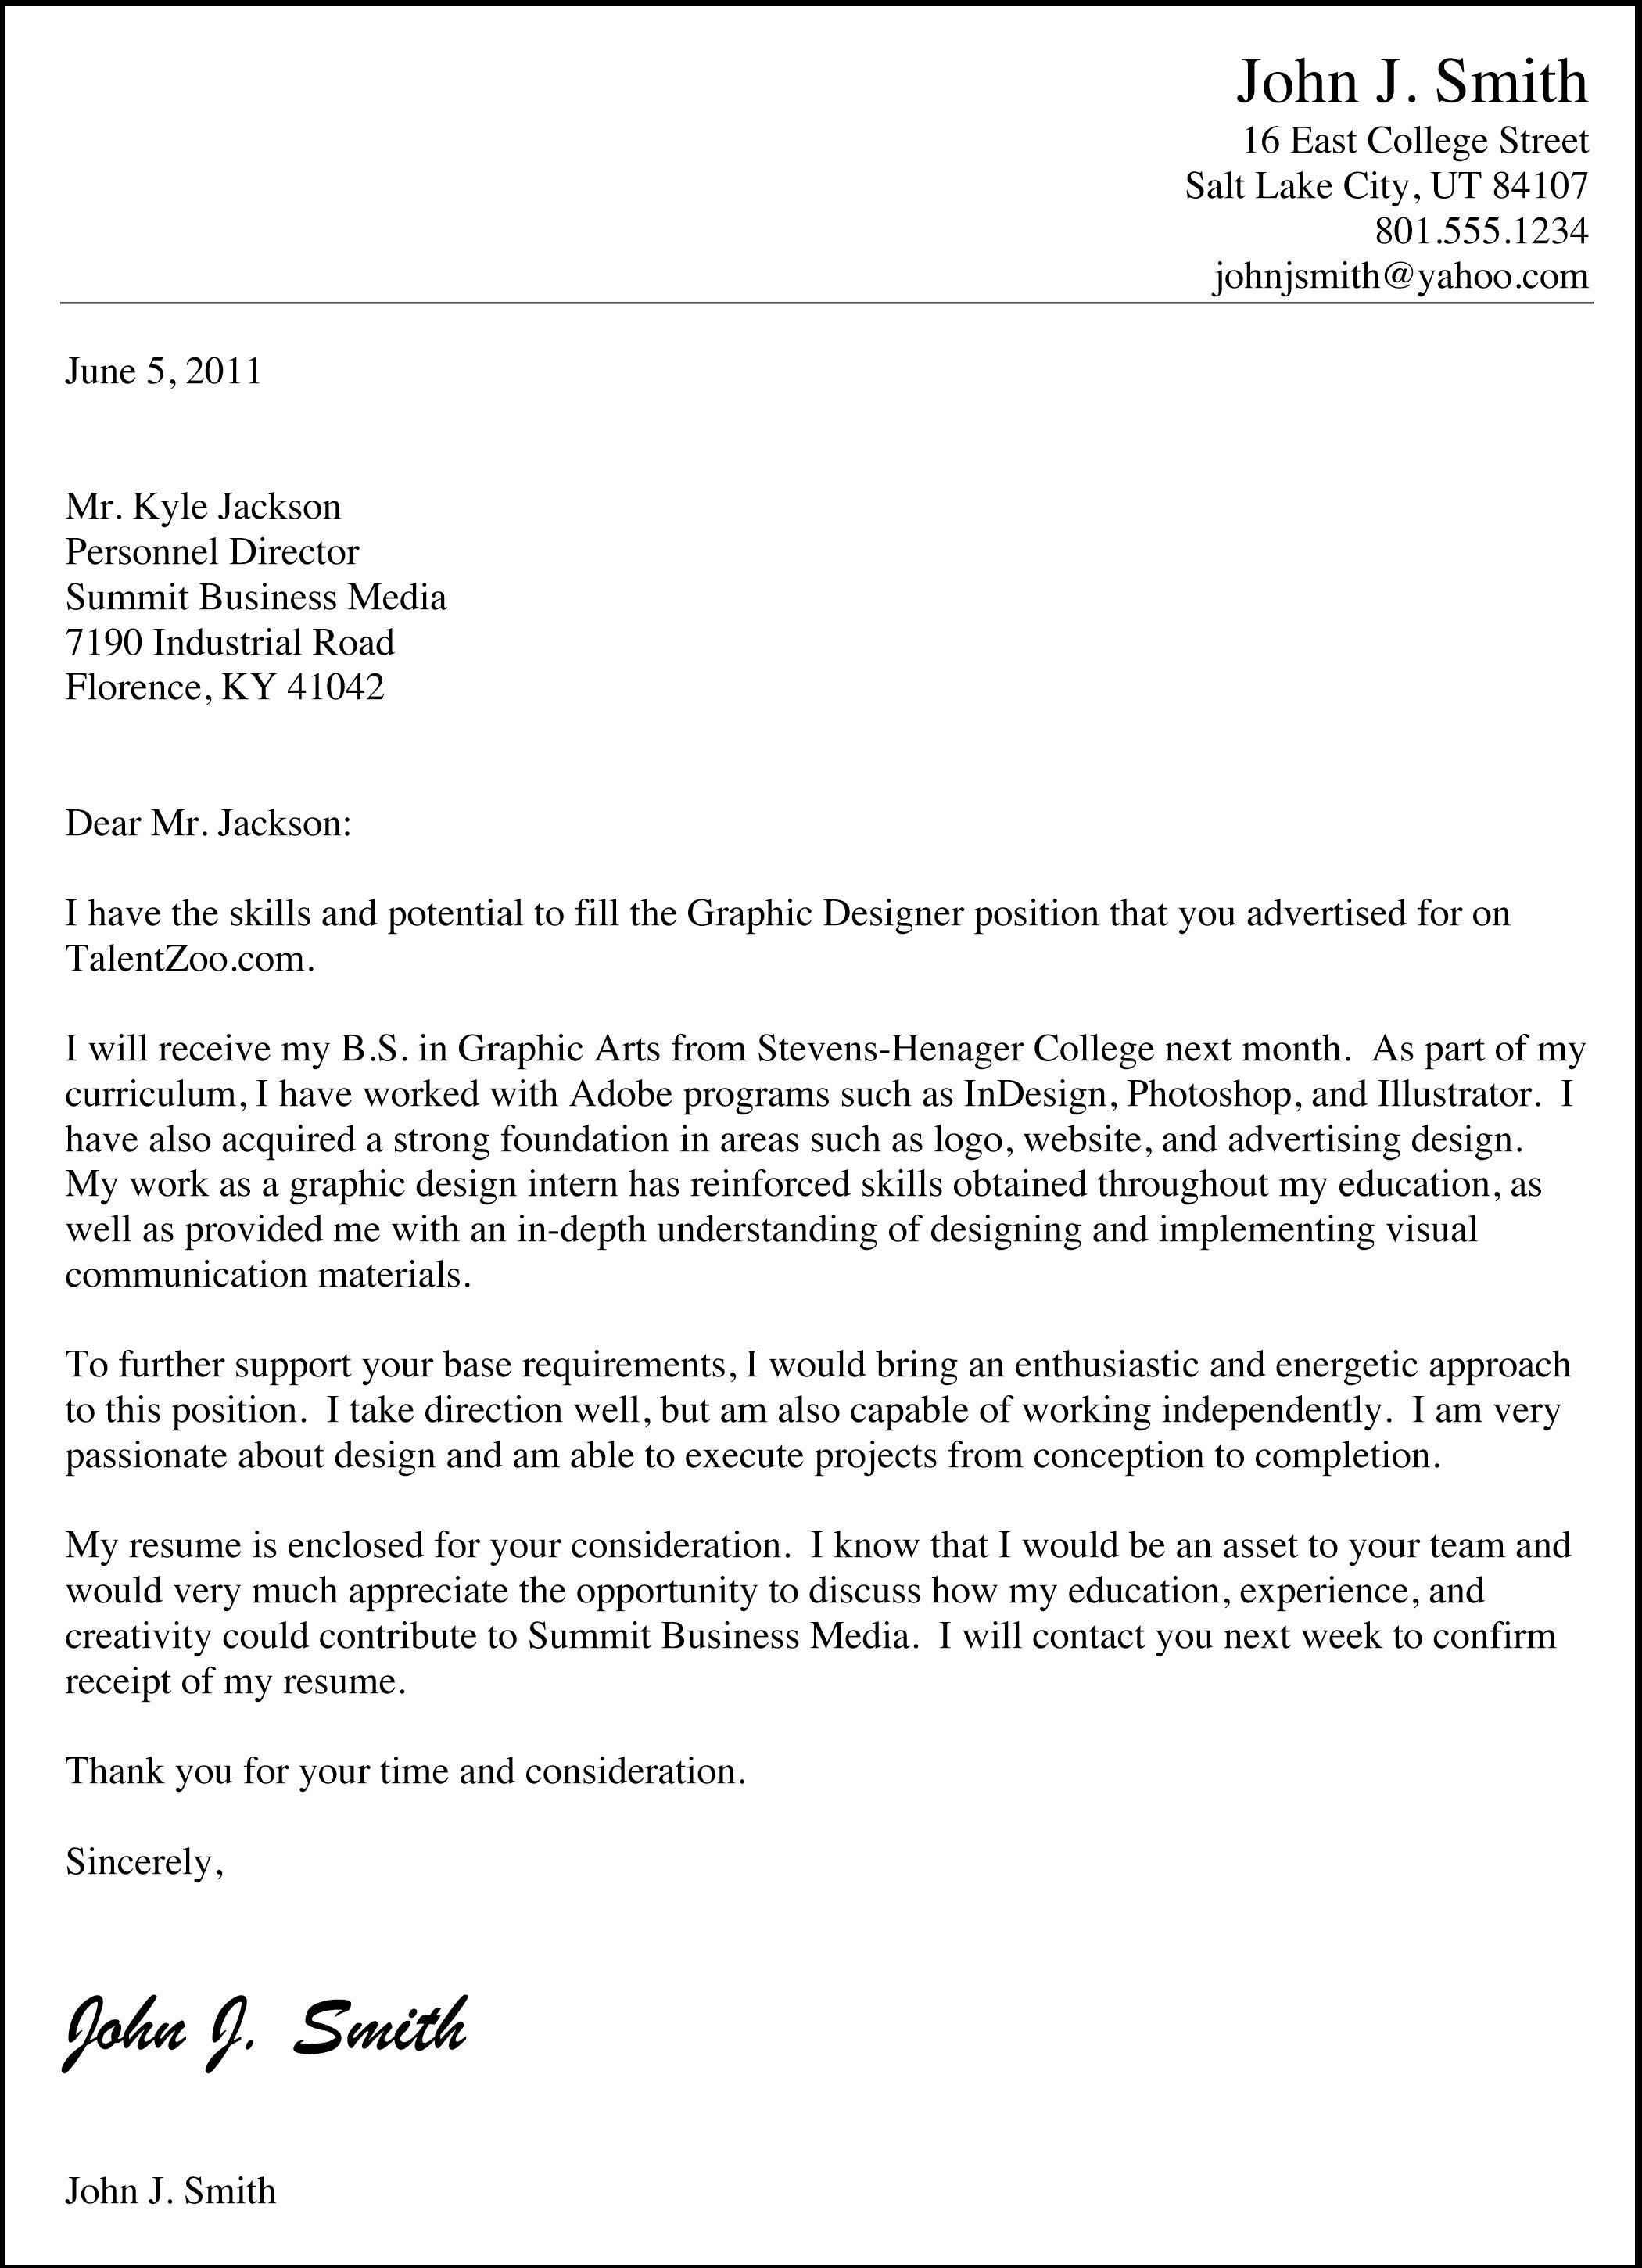 resignation letter sample resignation letter format pinterest